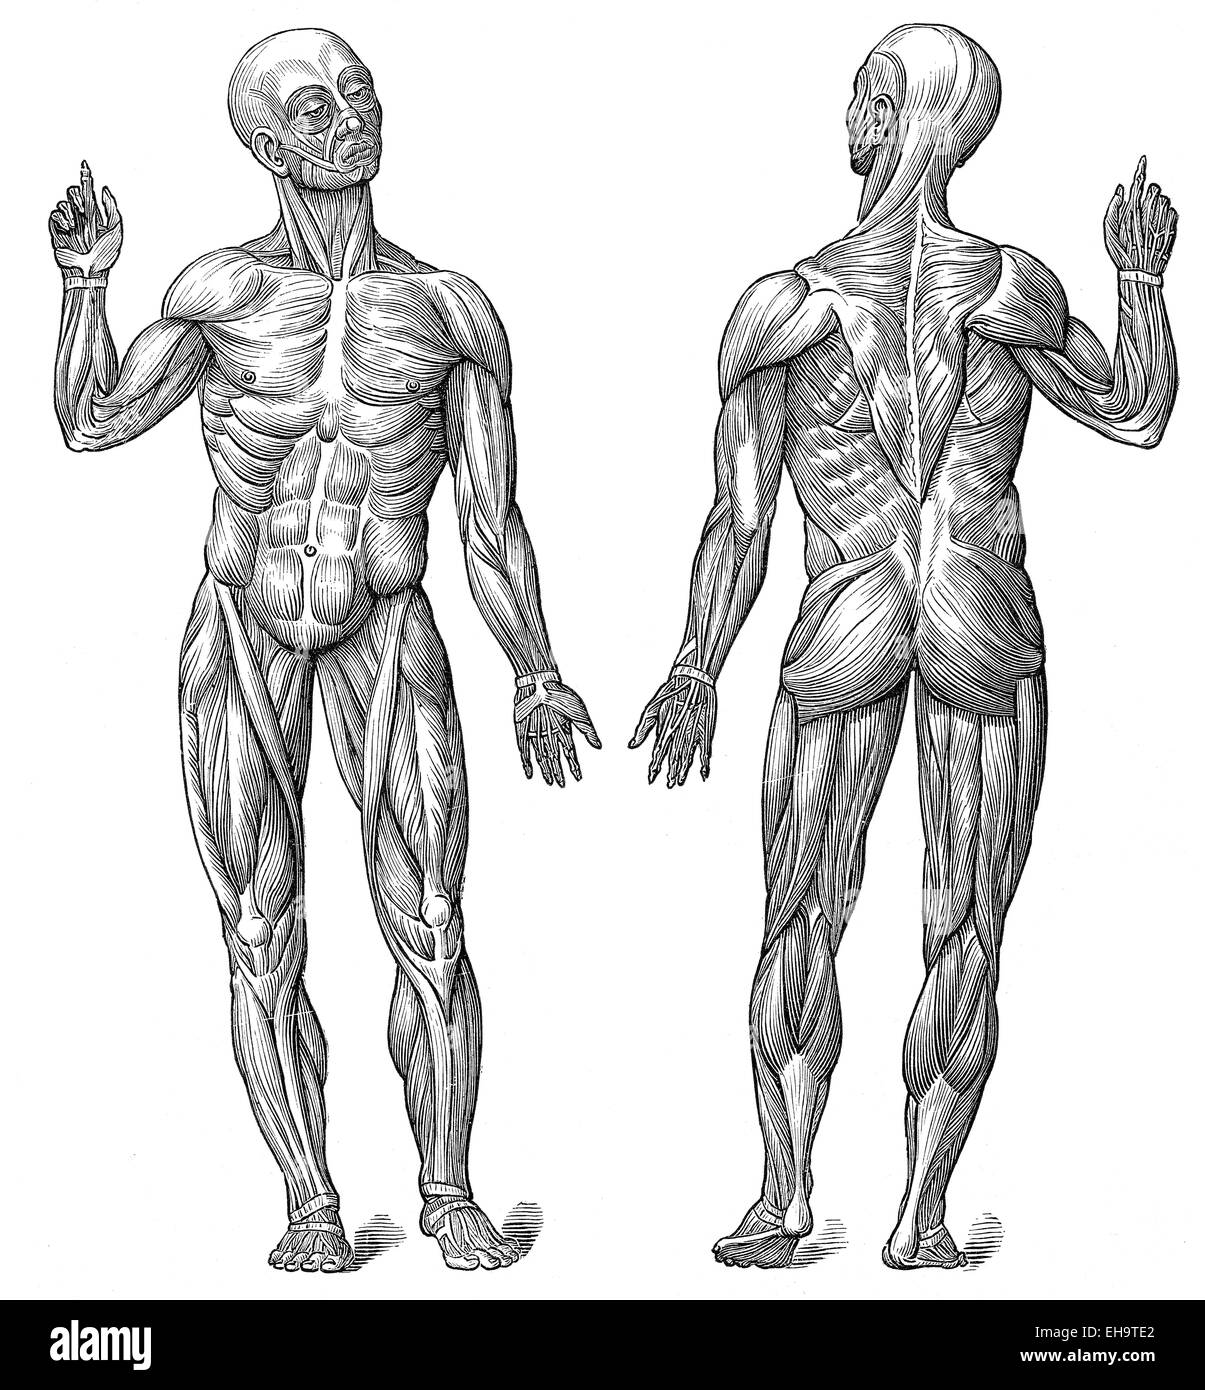 Anatomical Drawings Muscles Stock Photos Anatomical Drawings